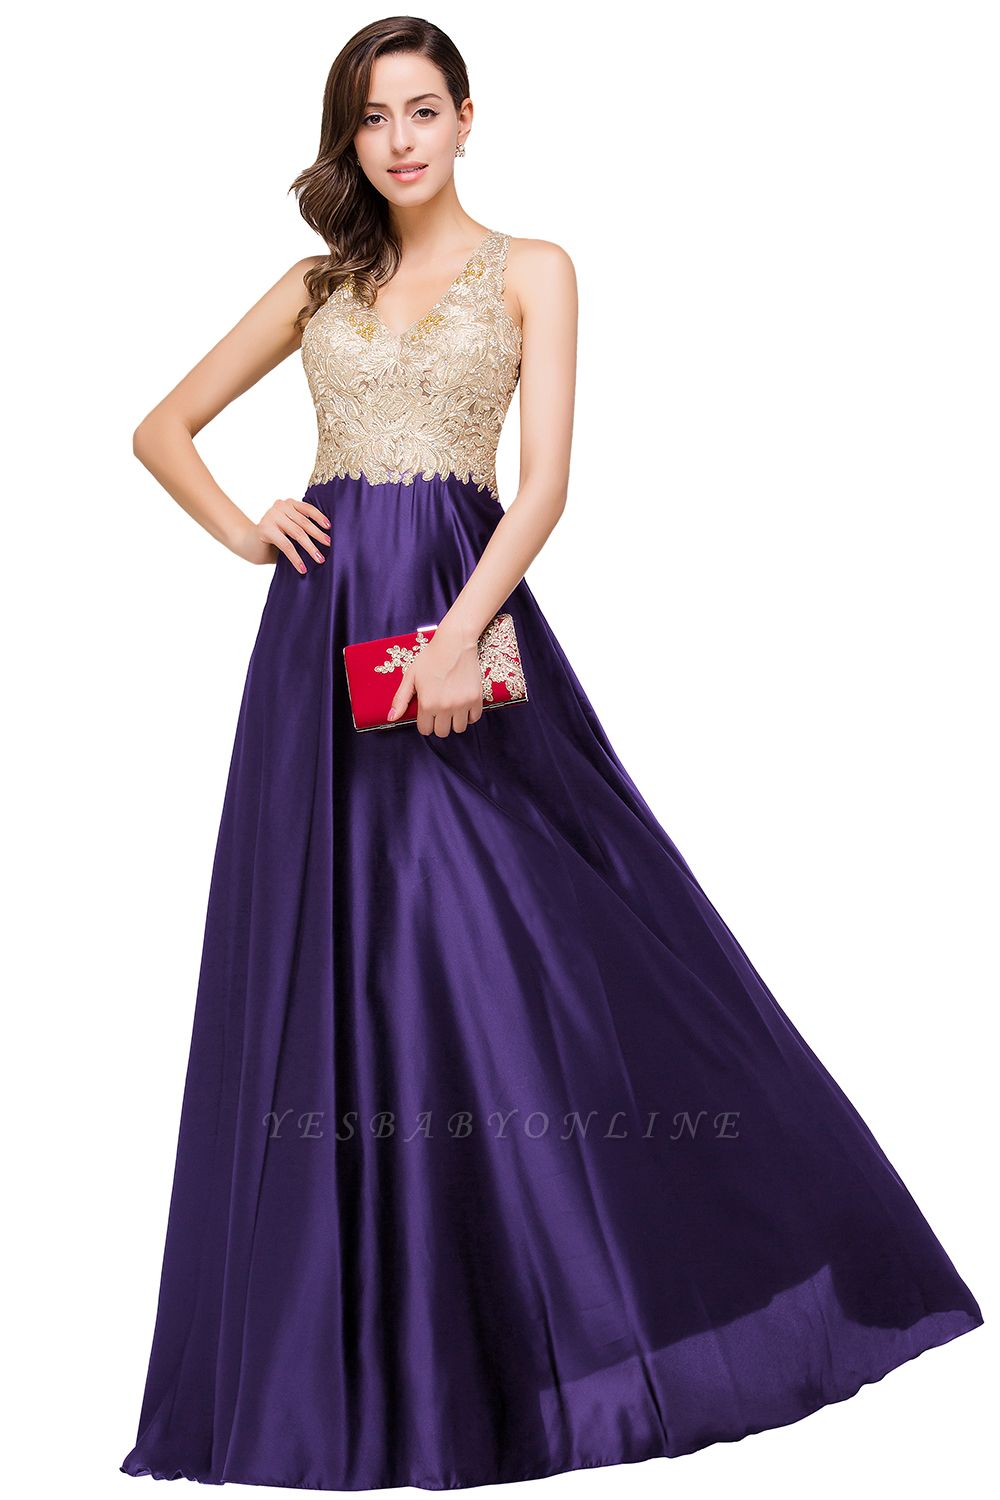 Cheap V-neck Satin Floor-Length A-Line Appliques Backless Prom Dress in Stock